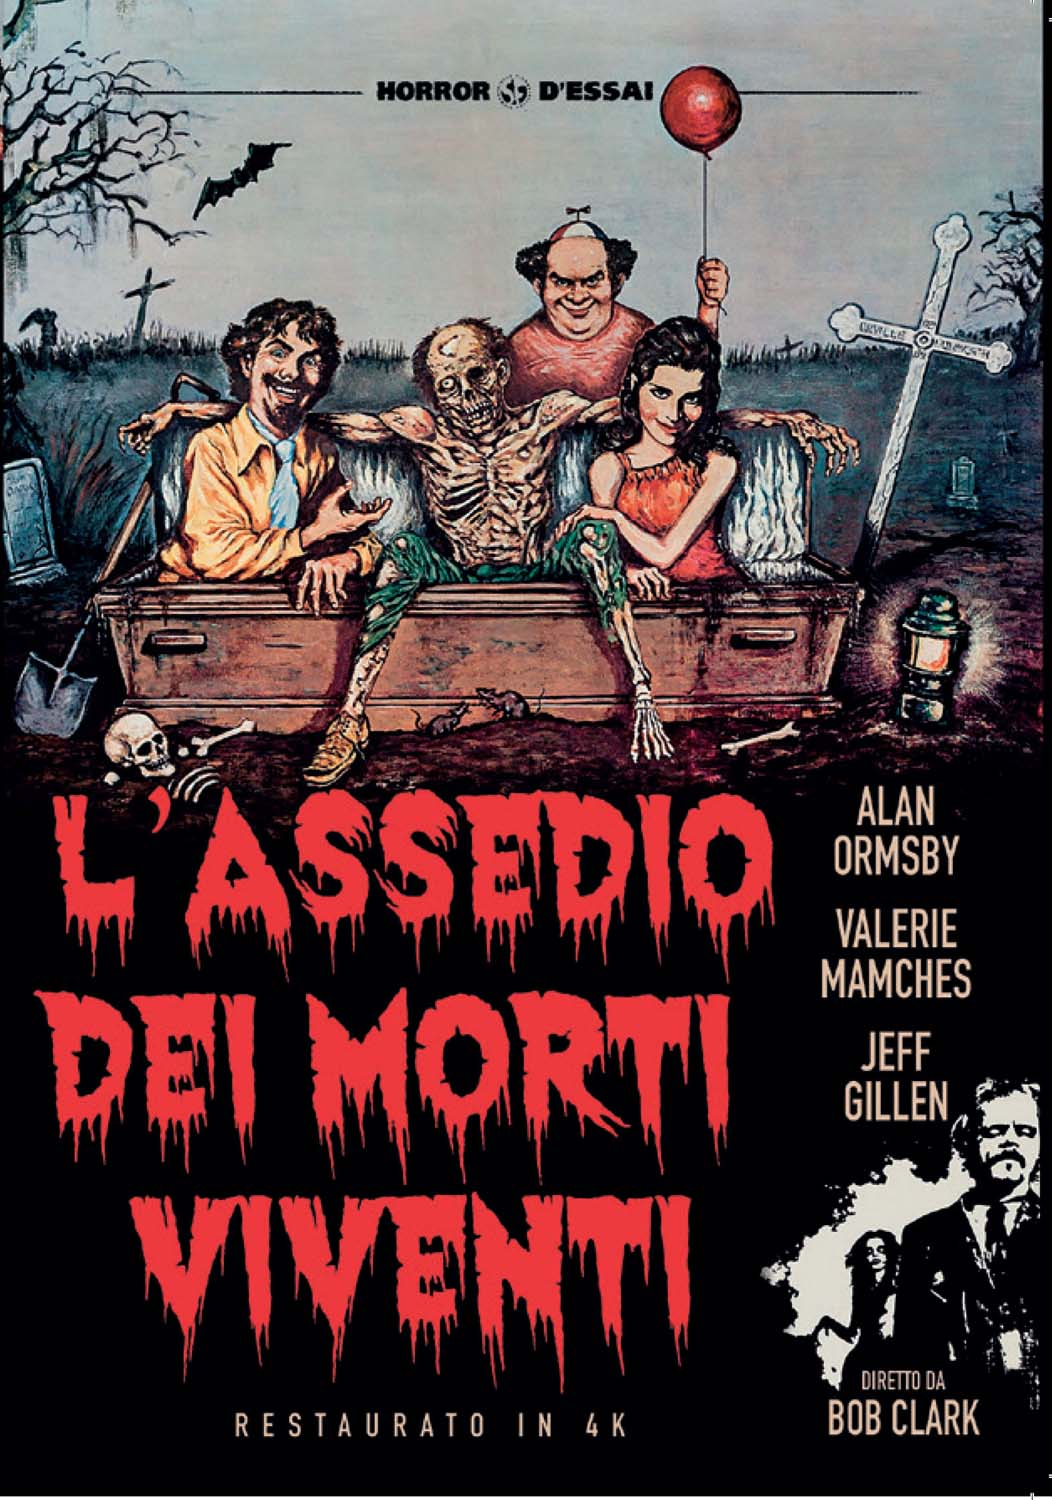 L'ASSEDIO DEI MORTI VIVENTI (RESTAURATO IN 4K) (DVD)